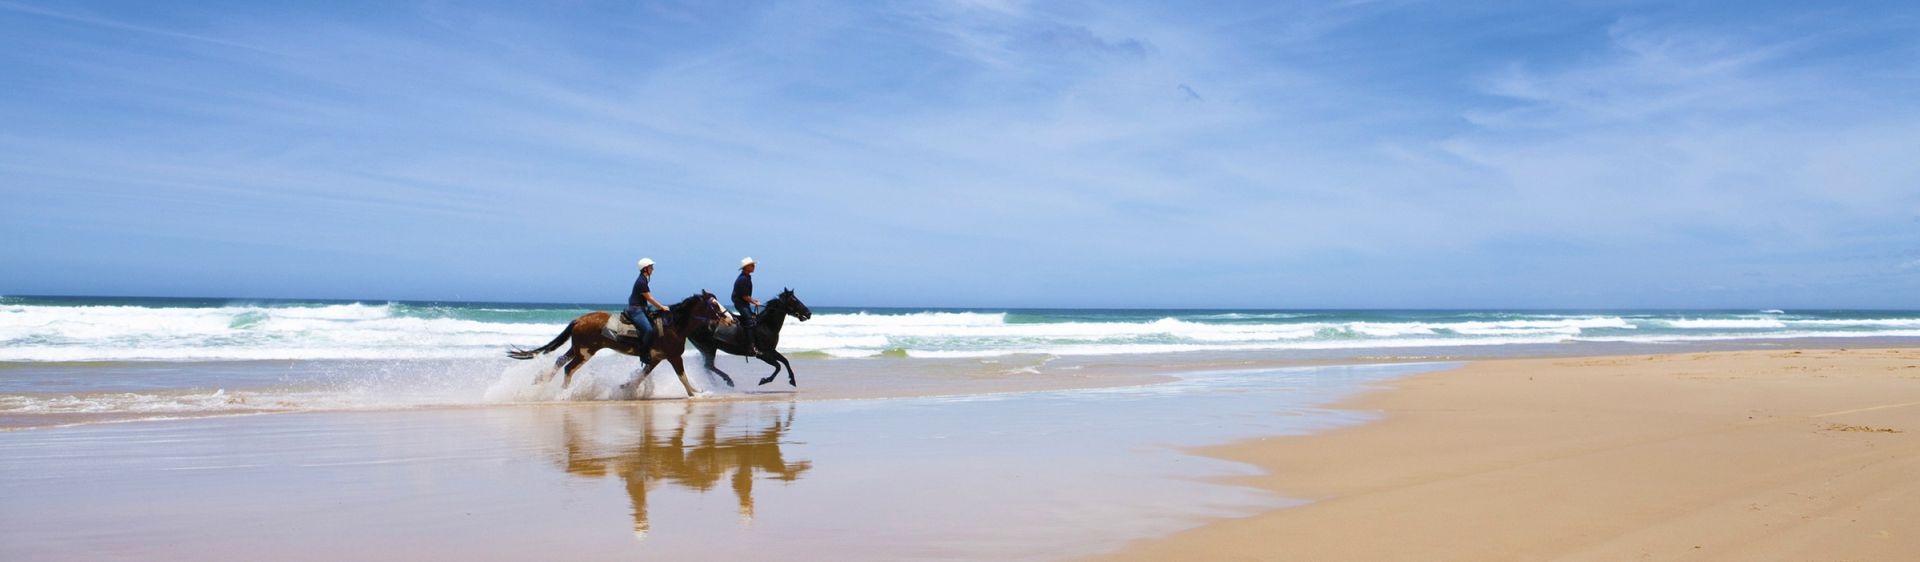 Horseriding along the beach in Worimi Conservation Lands, Port Stephens